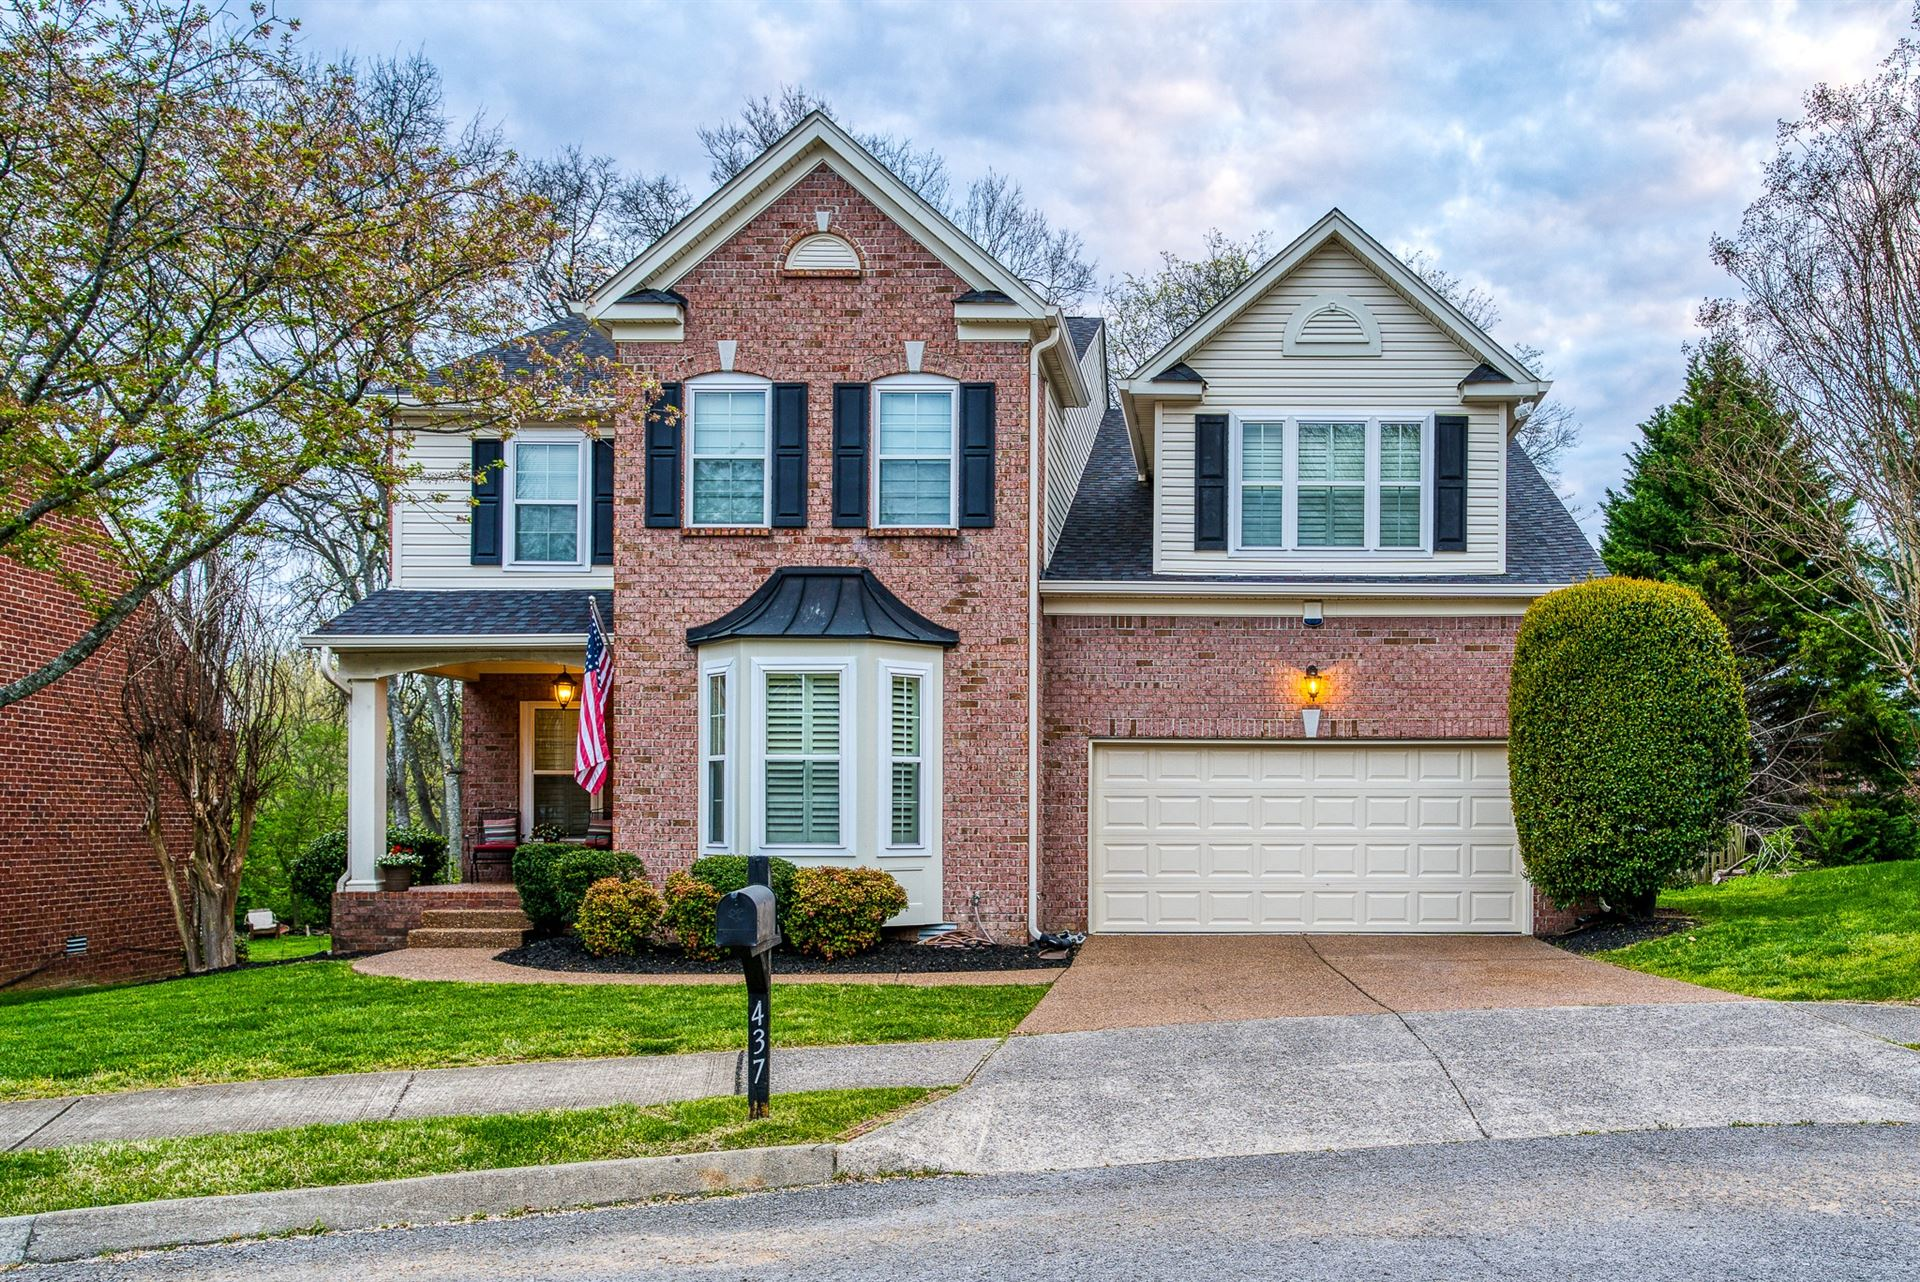 Photo of 437 William Wallace Dr, Franklin, TN 37064 (MLS # 2242416)